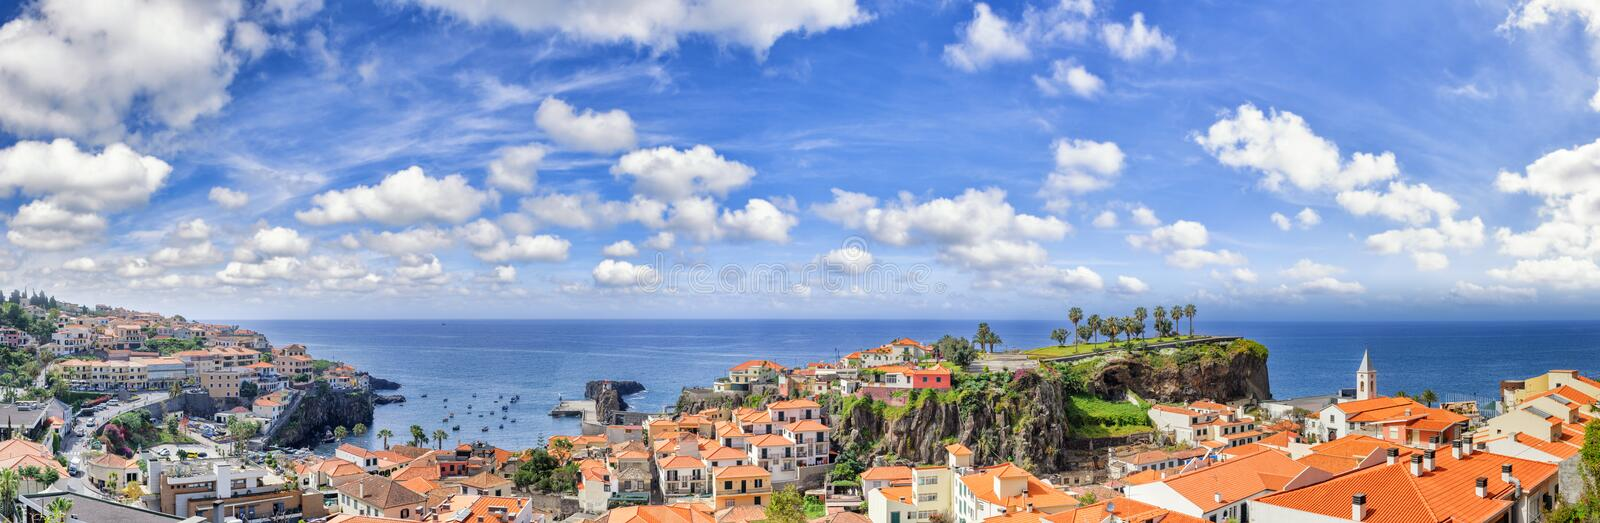 Panoramic landscape with view of Camara de Lobos, small fisherma. N village on Madeira island. Copy space stock photo